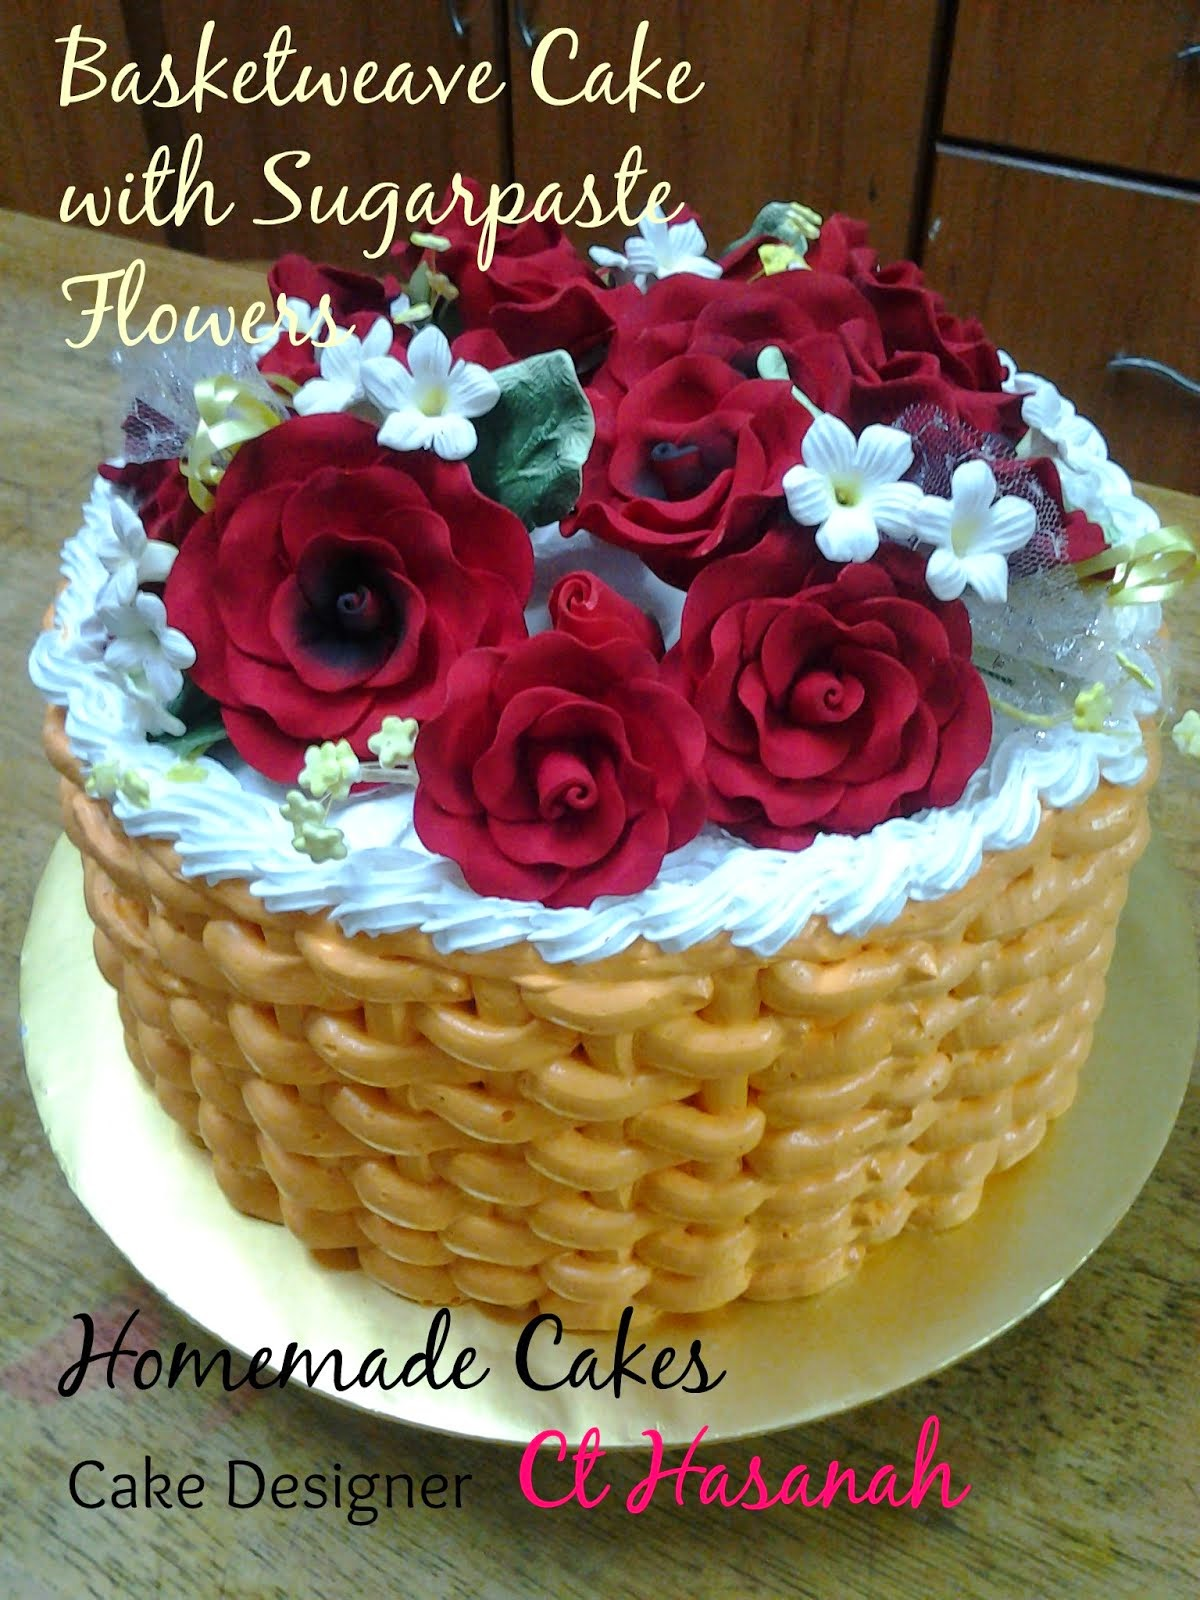 Ct Hasanah Cake House Birthday Cake